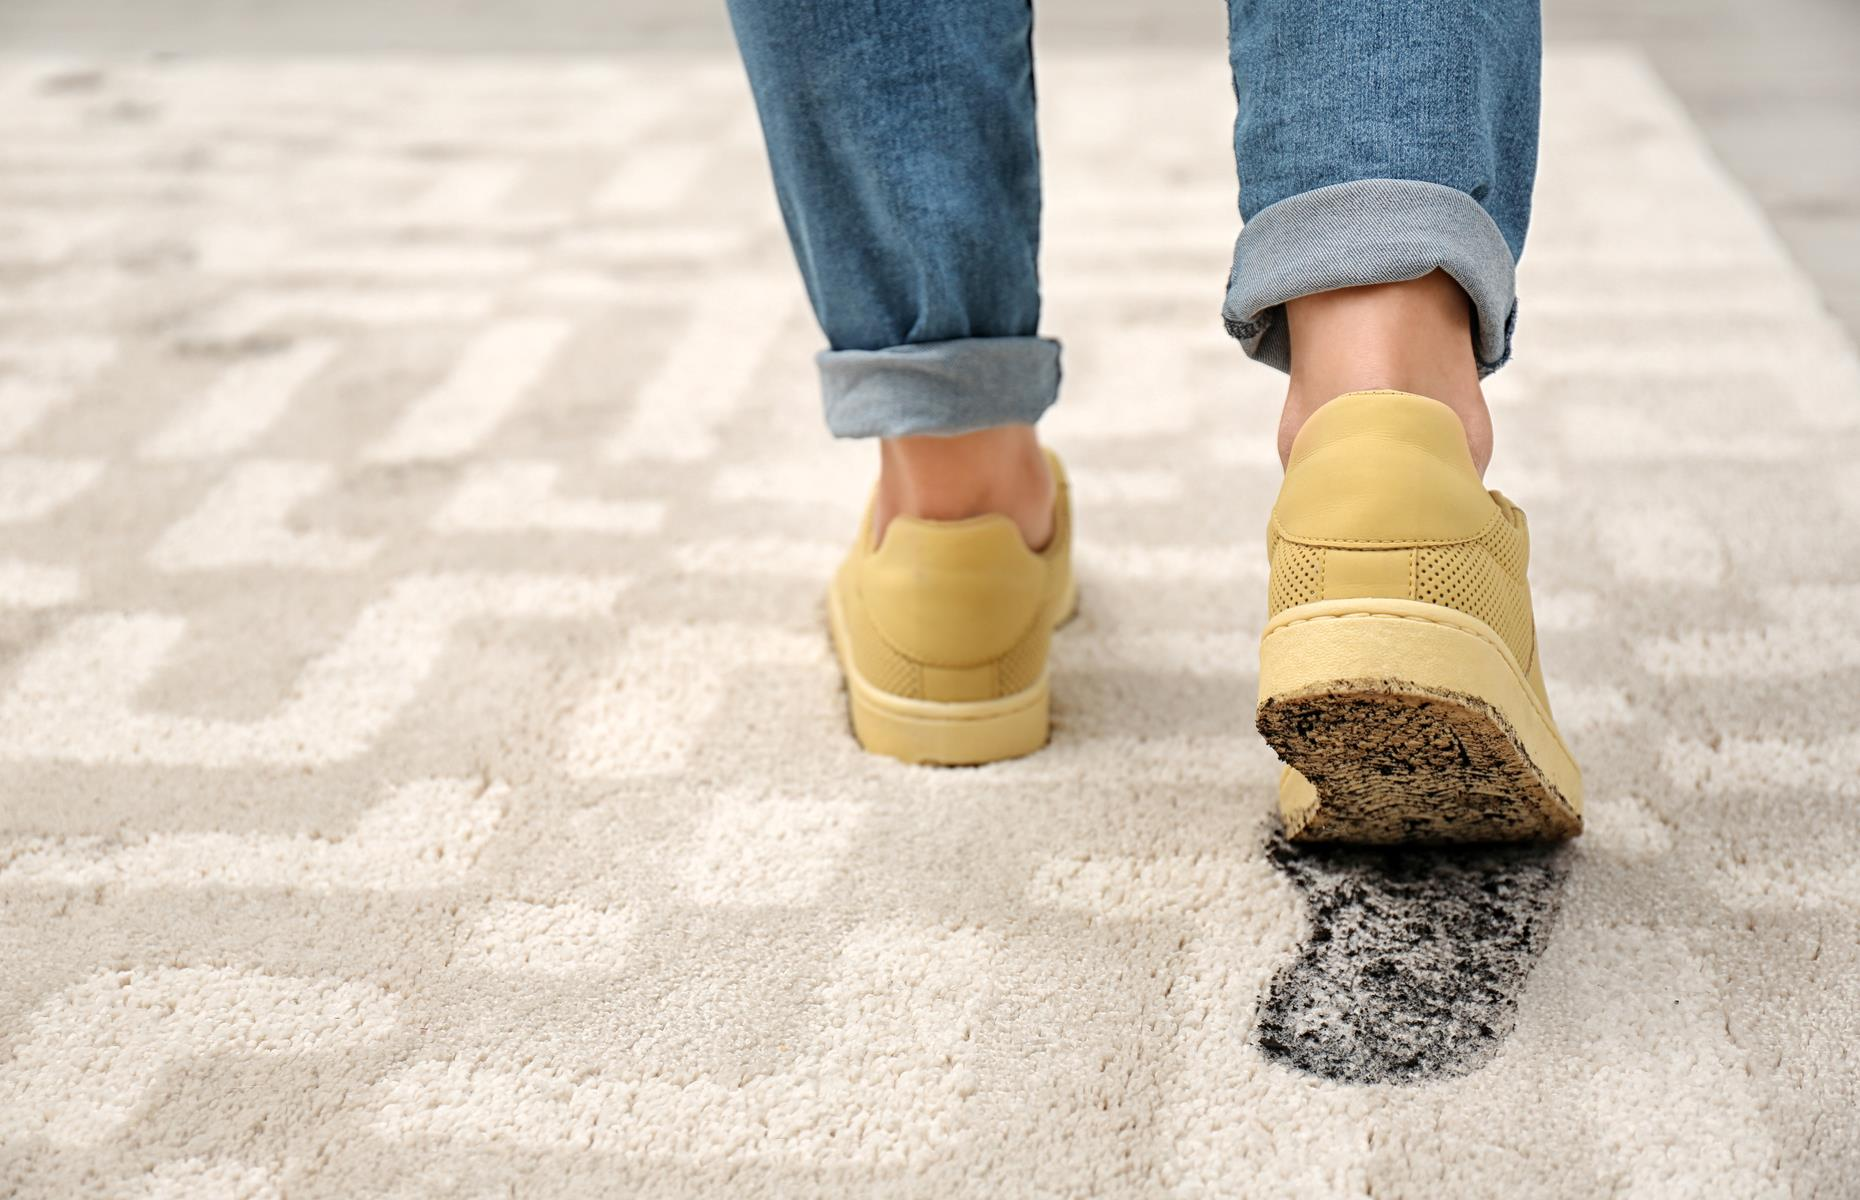 You never know what harmful microbes are lurking on your shoes. Image: New Africa / Shutterstock